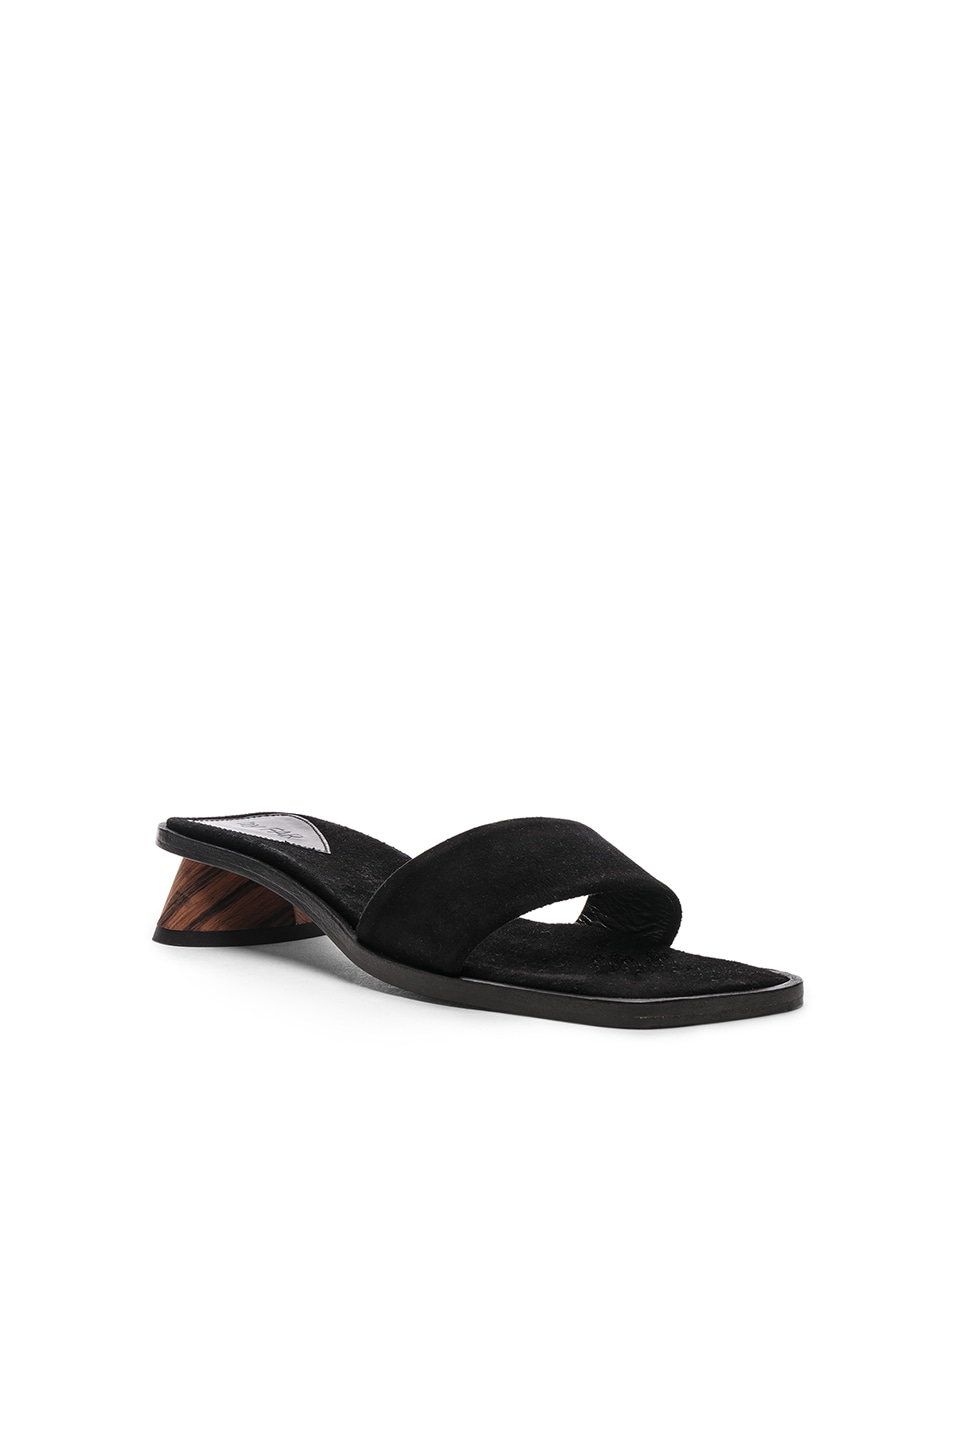 Image 2 of By Far Sonia Sandal in Black Suede